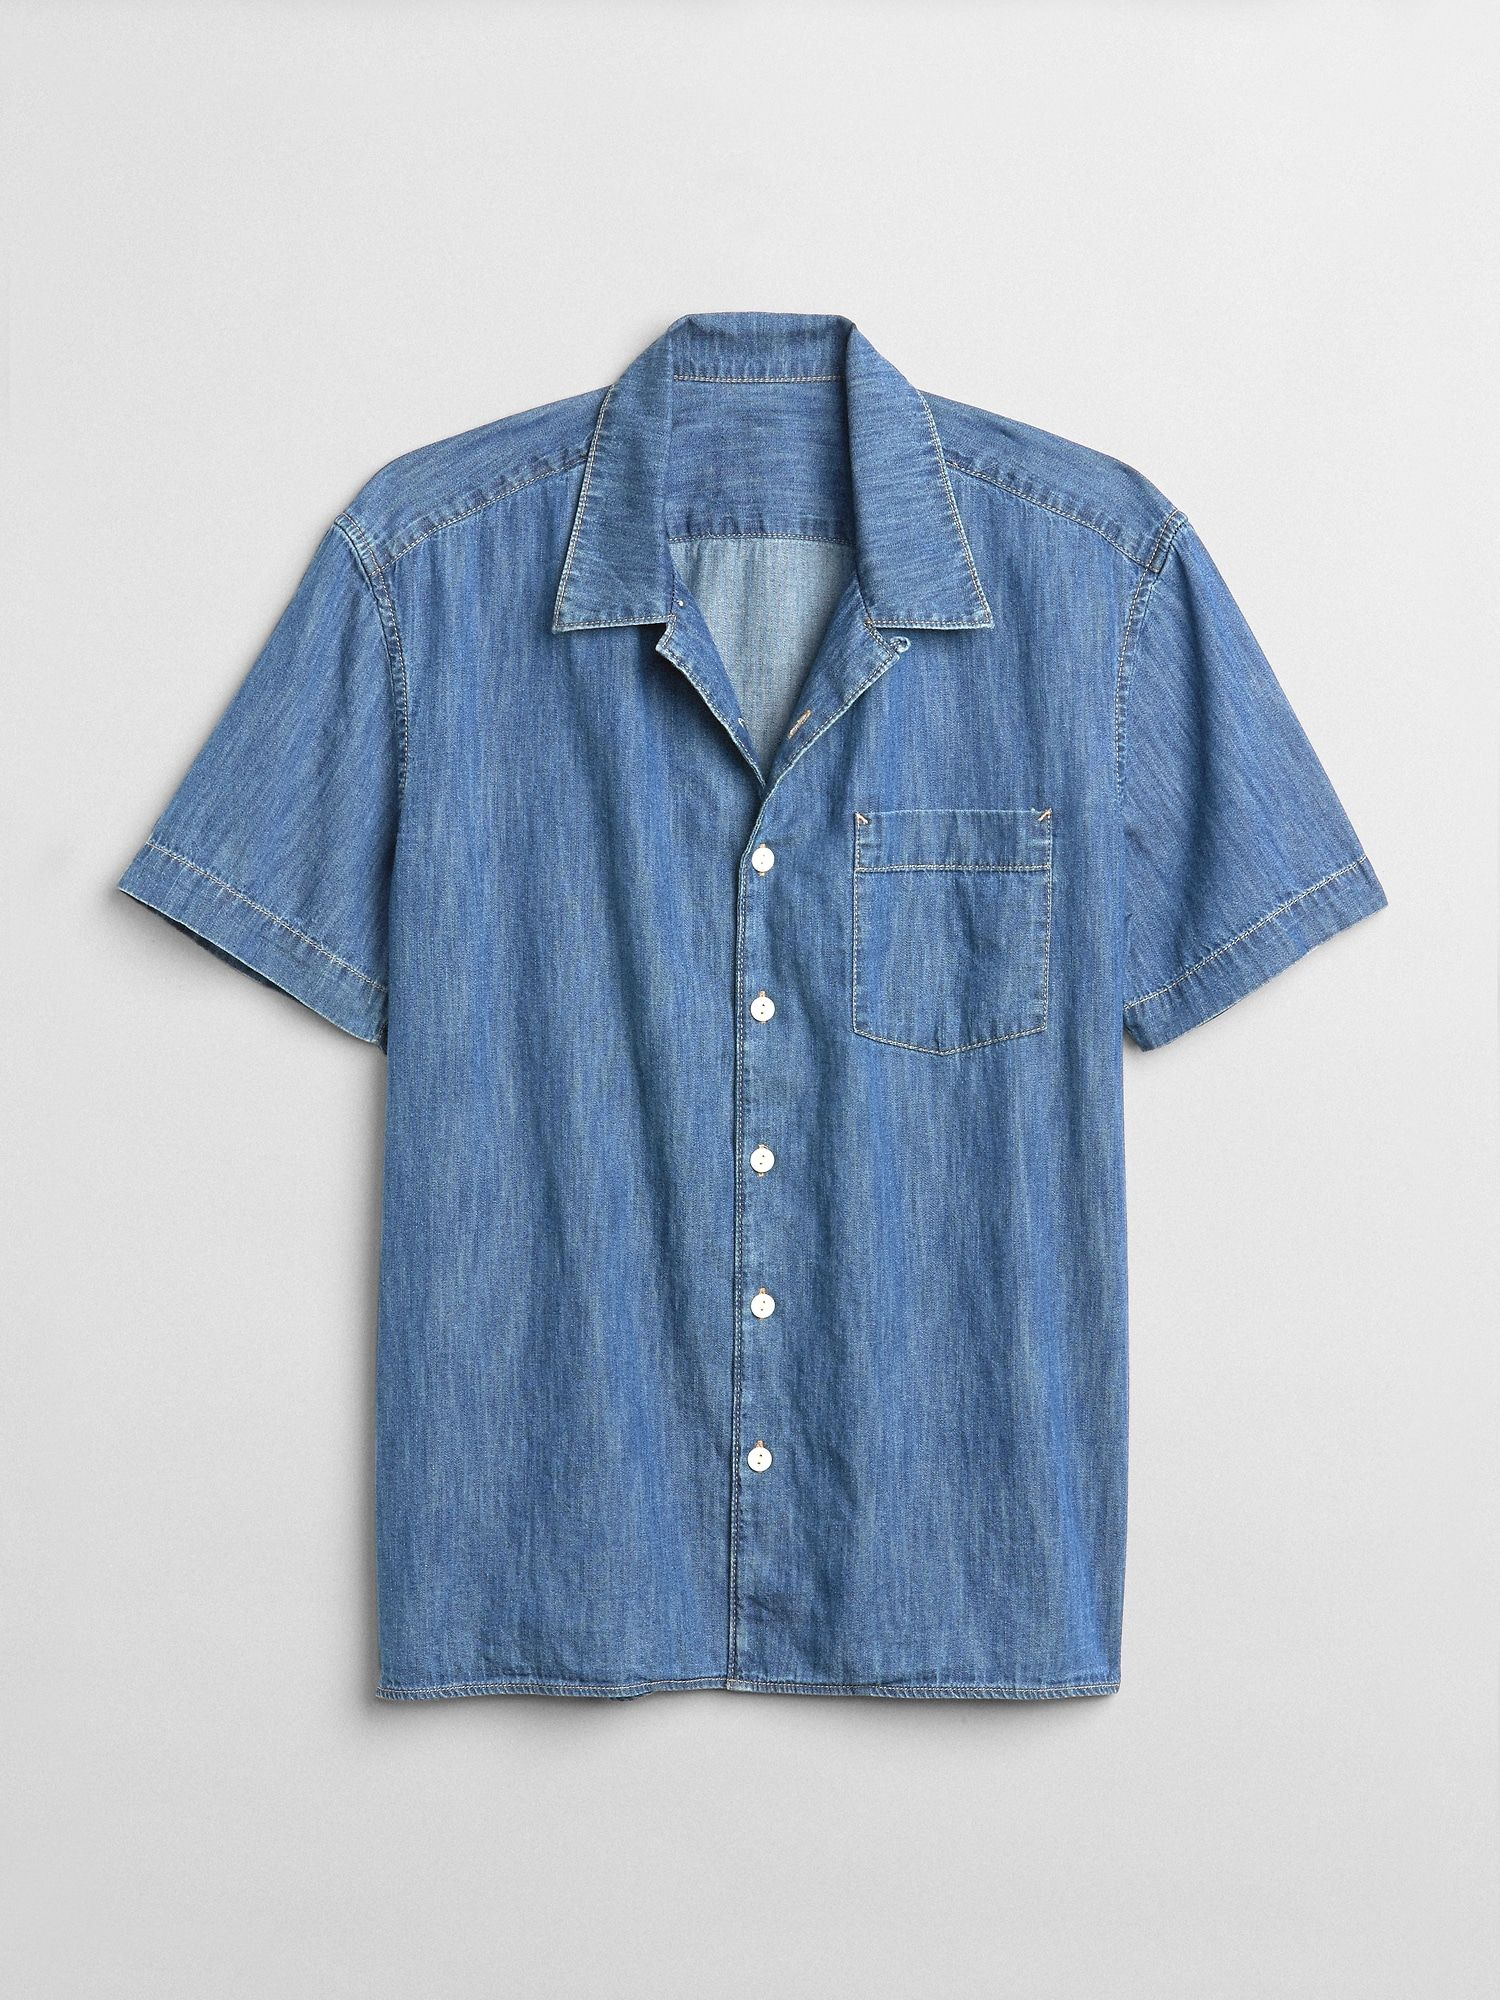 Standard Fit Short Sleeve Shirt in Denim